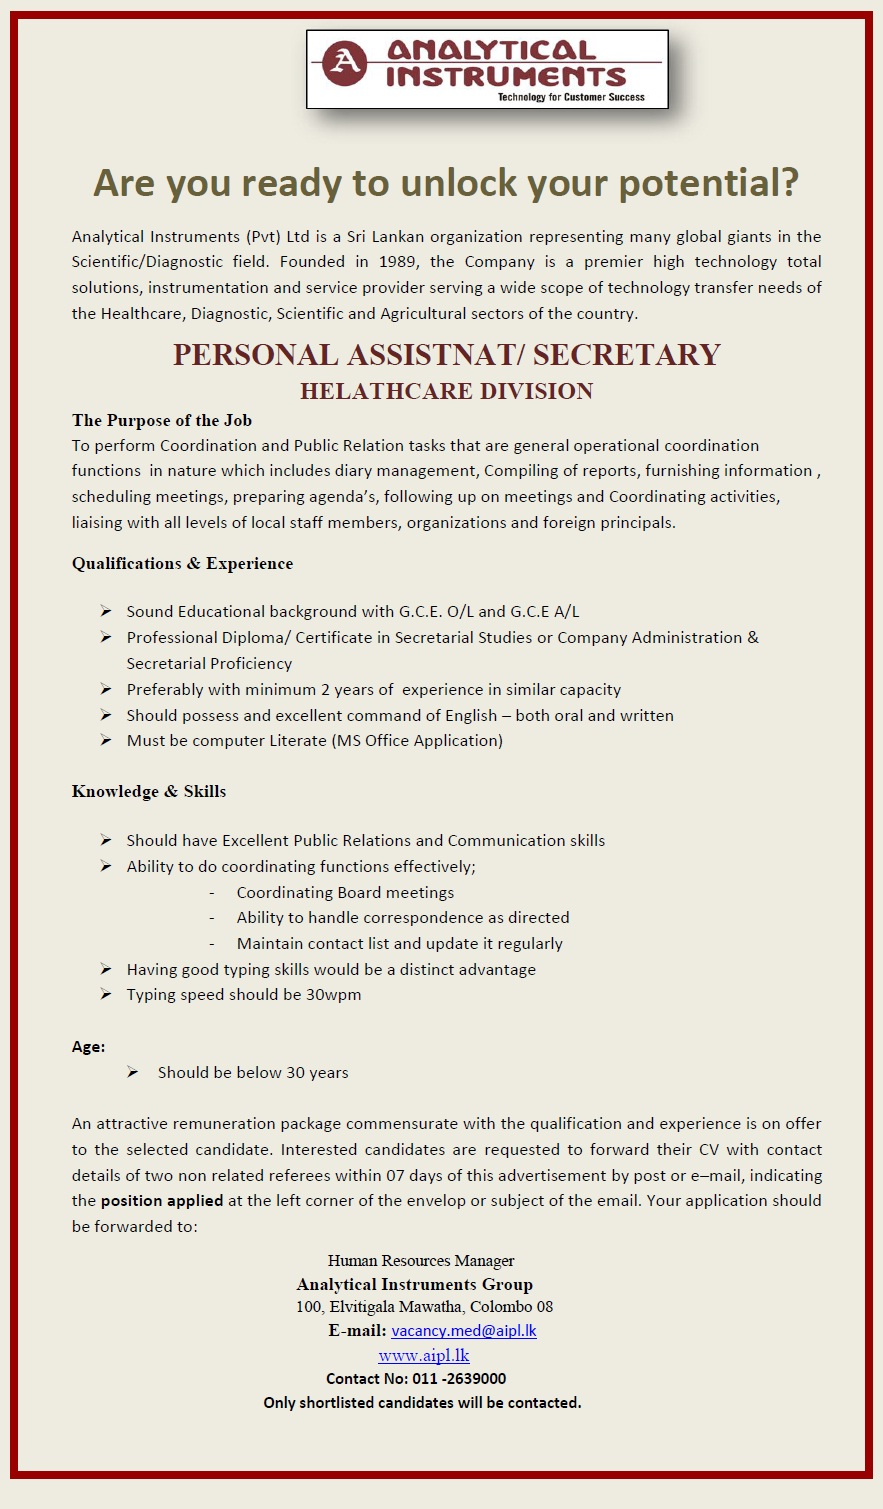 personal assistant personal secretary job vacancy in sri lanka personal assistant personal secretary qualifications > sound educational background g c e o l and g c e a l > professional diploma certificate in